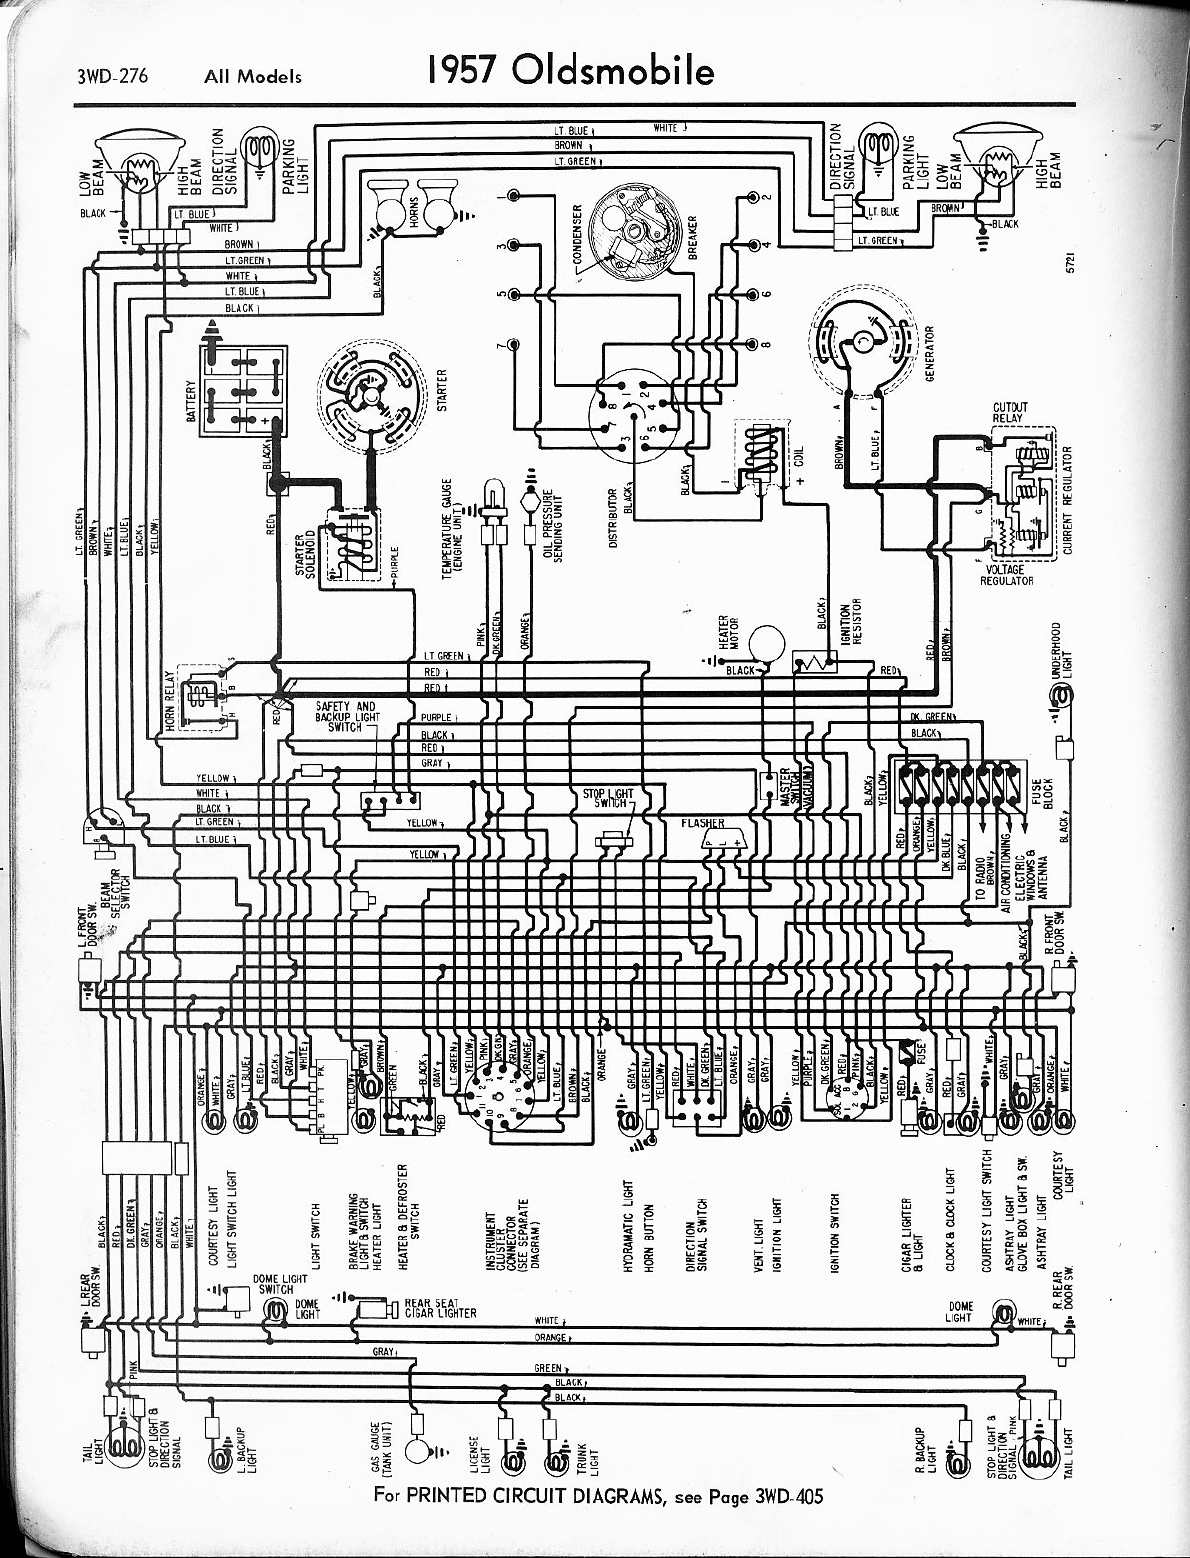 1967 Oldsmobile Toronado Wiring Diagram - Wiring Diagram G11 on 1967 kaiser jeep wiring diagrams, 1967 oldsmobile paint codes, 1967 dodge charger wiring diagrams, 1967 ford wiring diagrams,